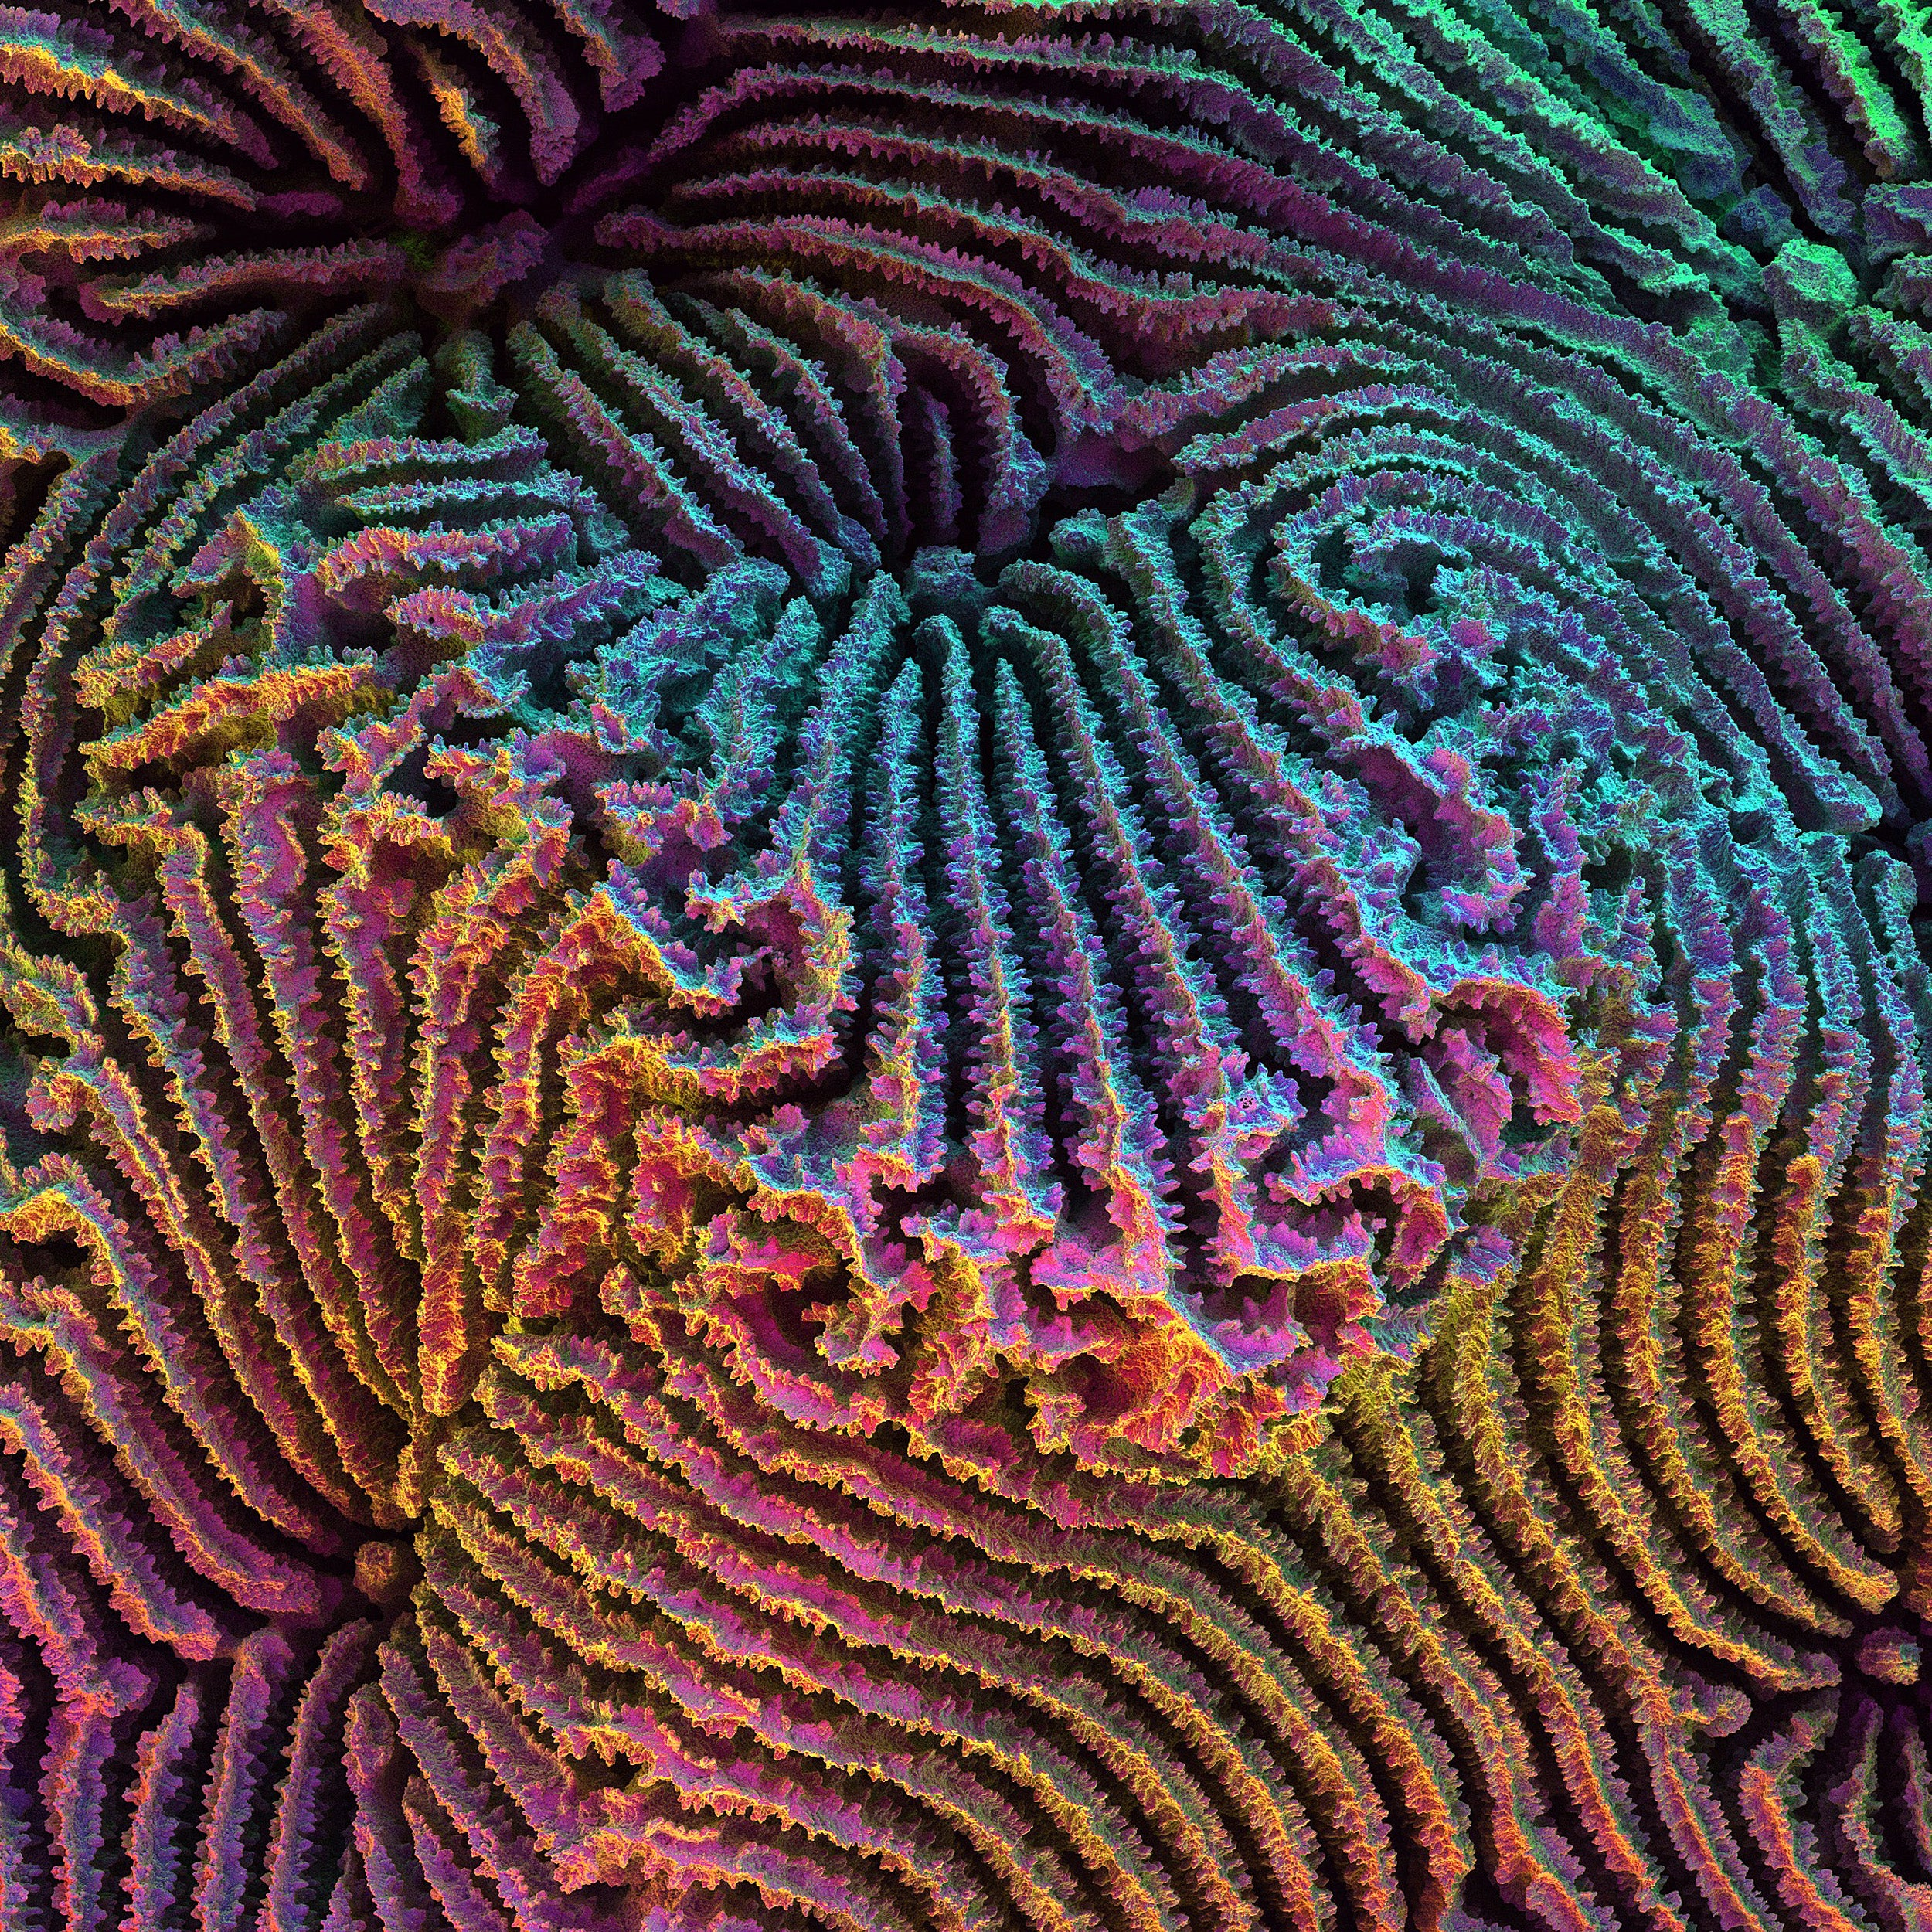 Polychromatic scanning electron micrograph of the skeletal details of the coral, Coscinaraea